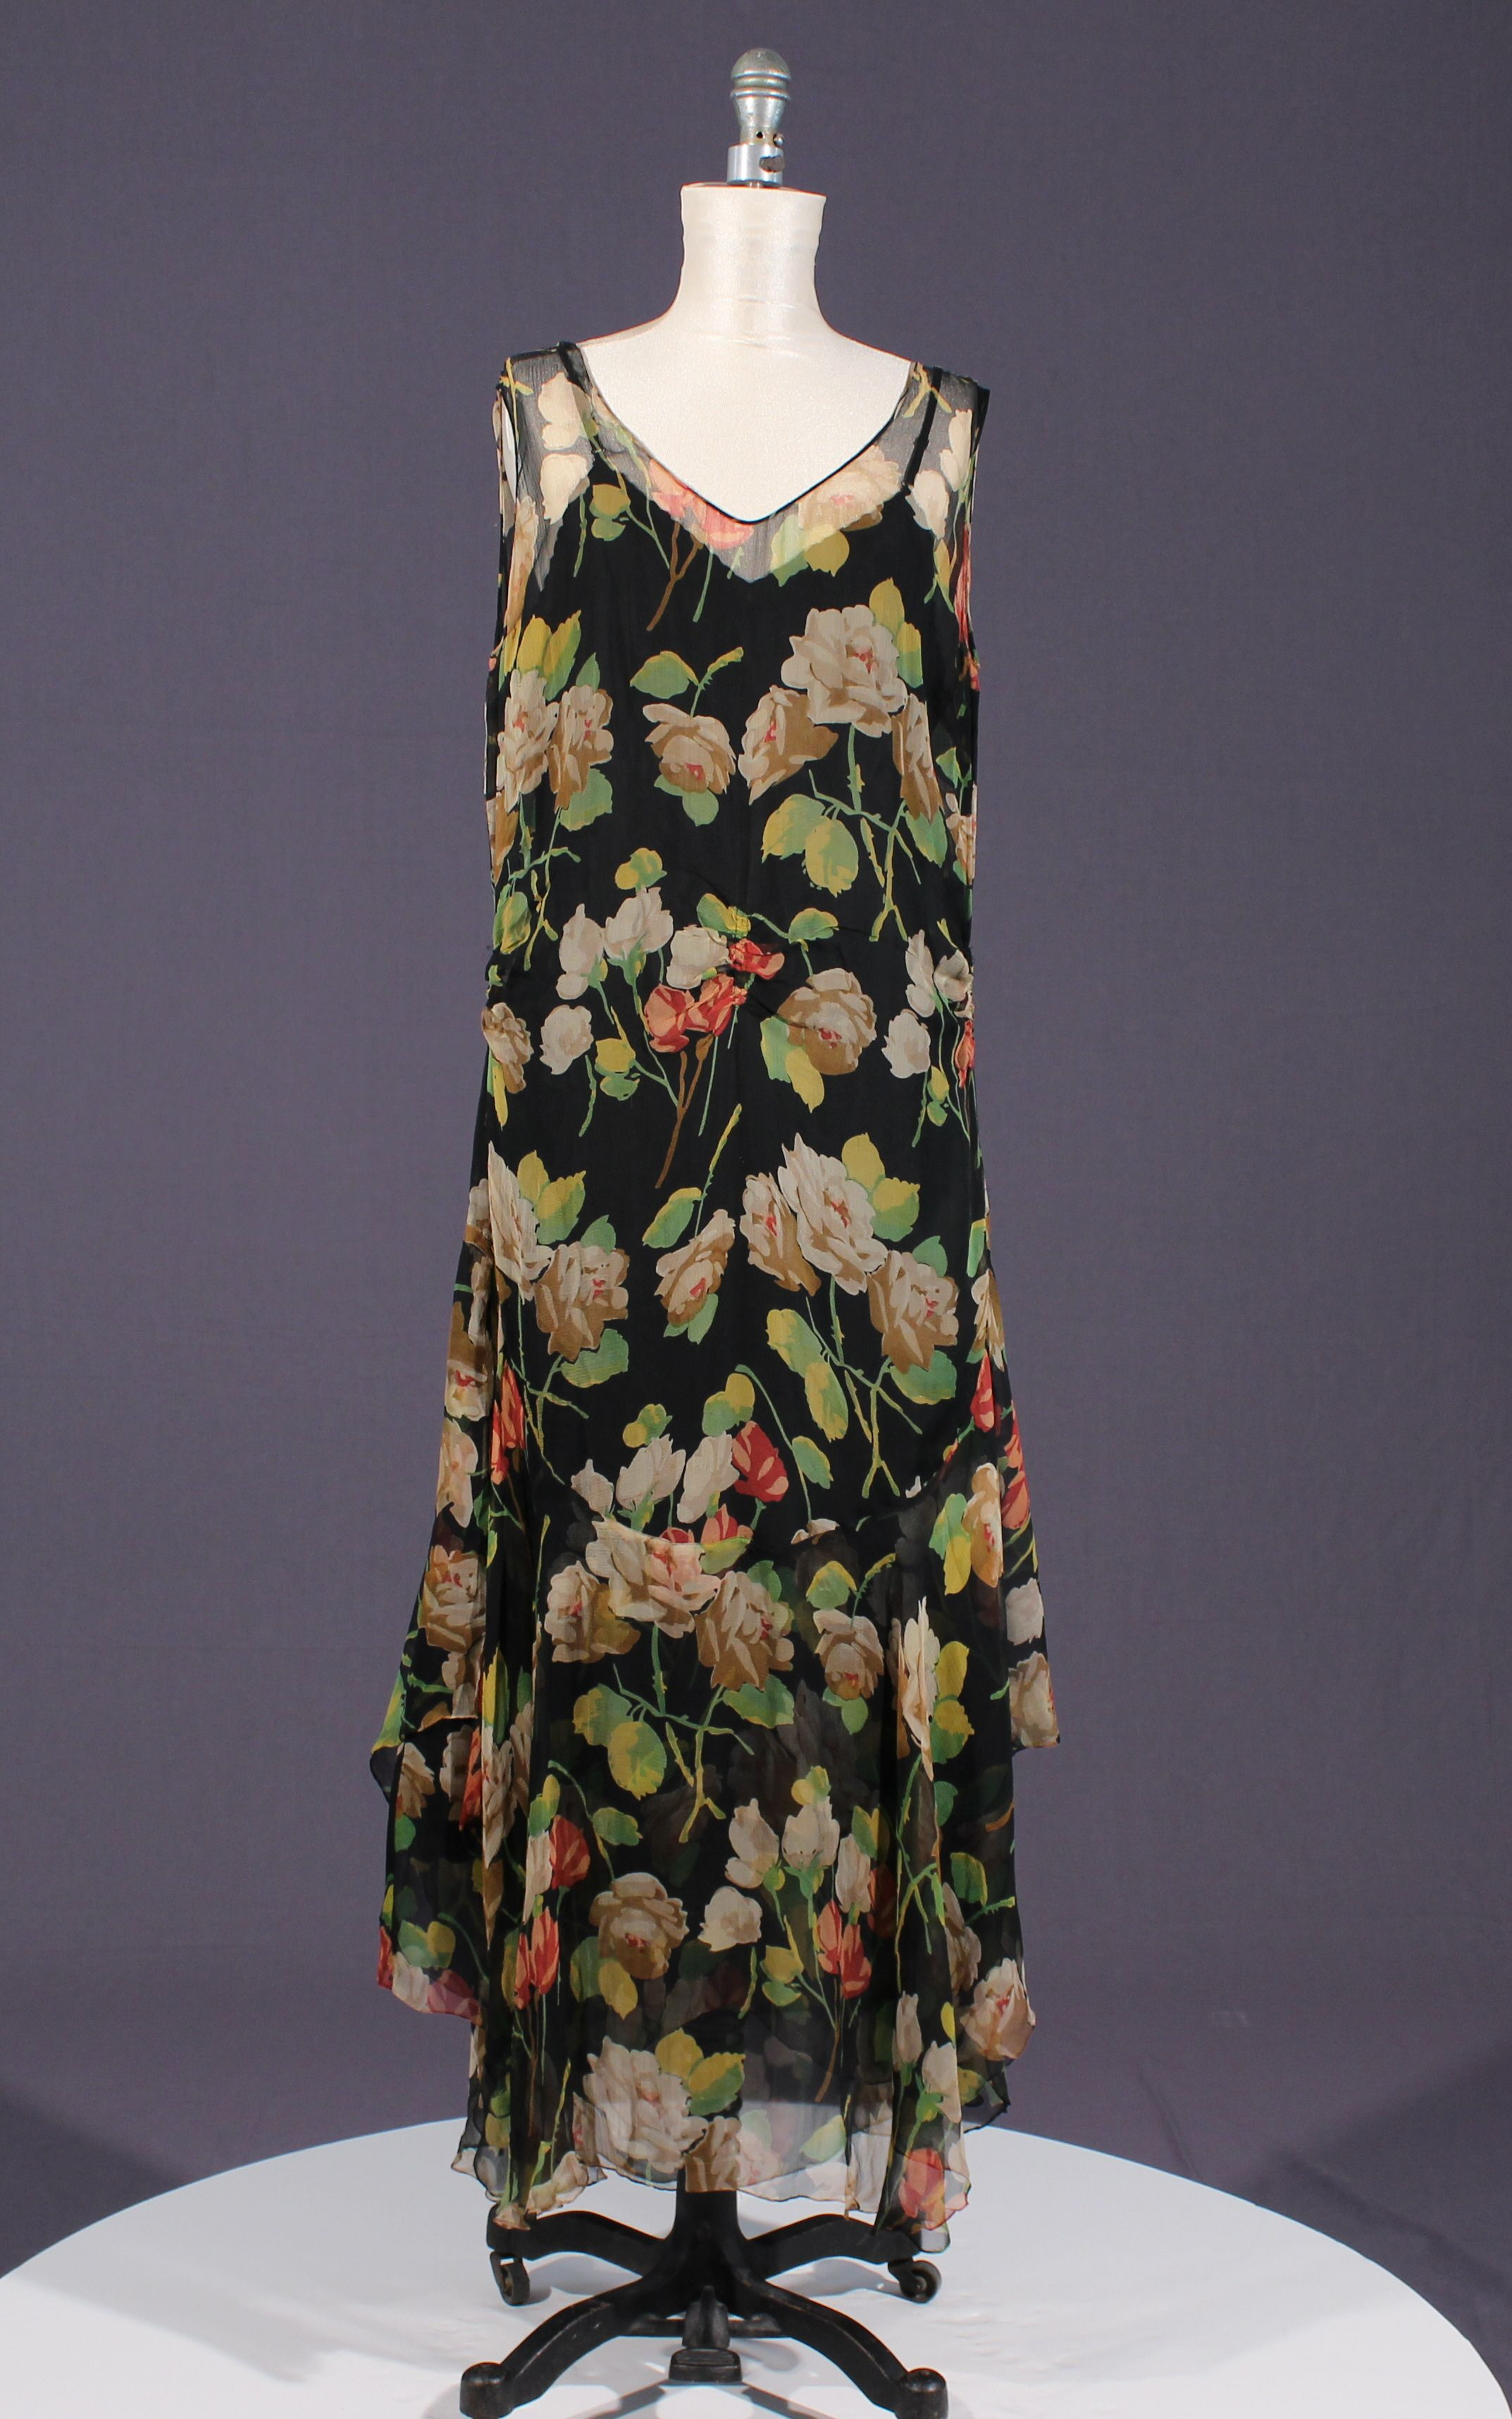 rose printed chiffon 1920s dress | moda | Pinterest | Siglo xvi y ...